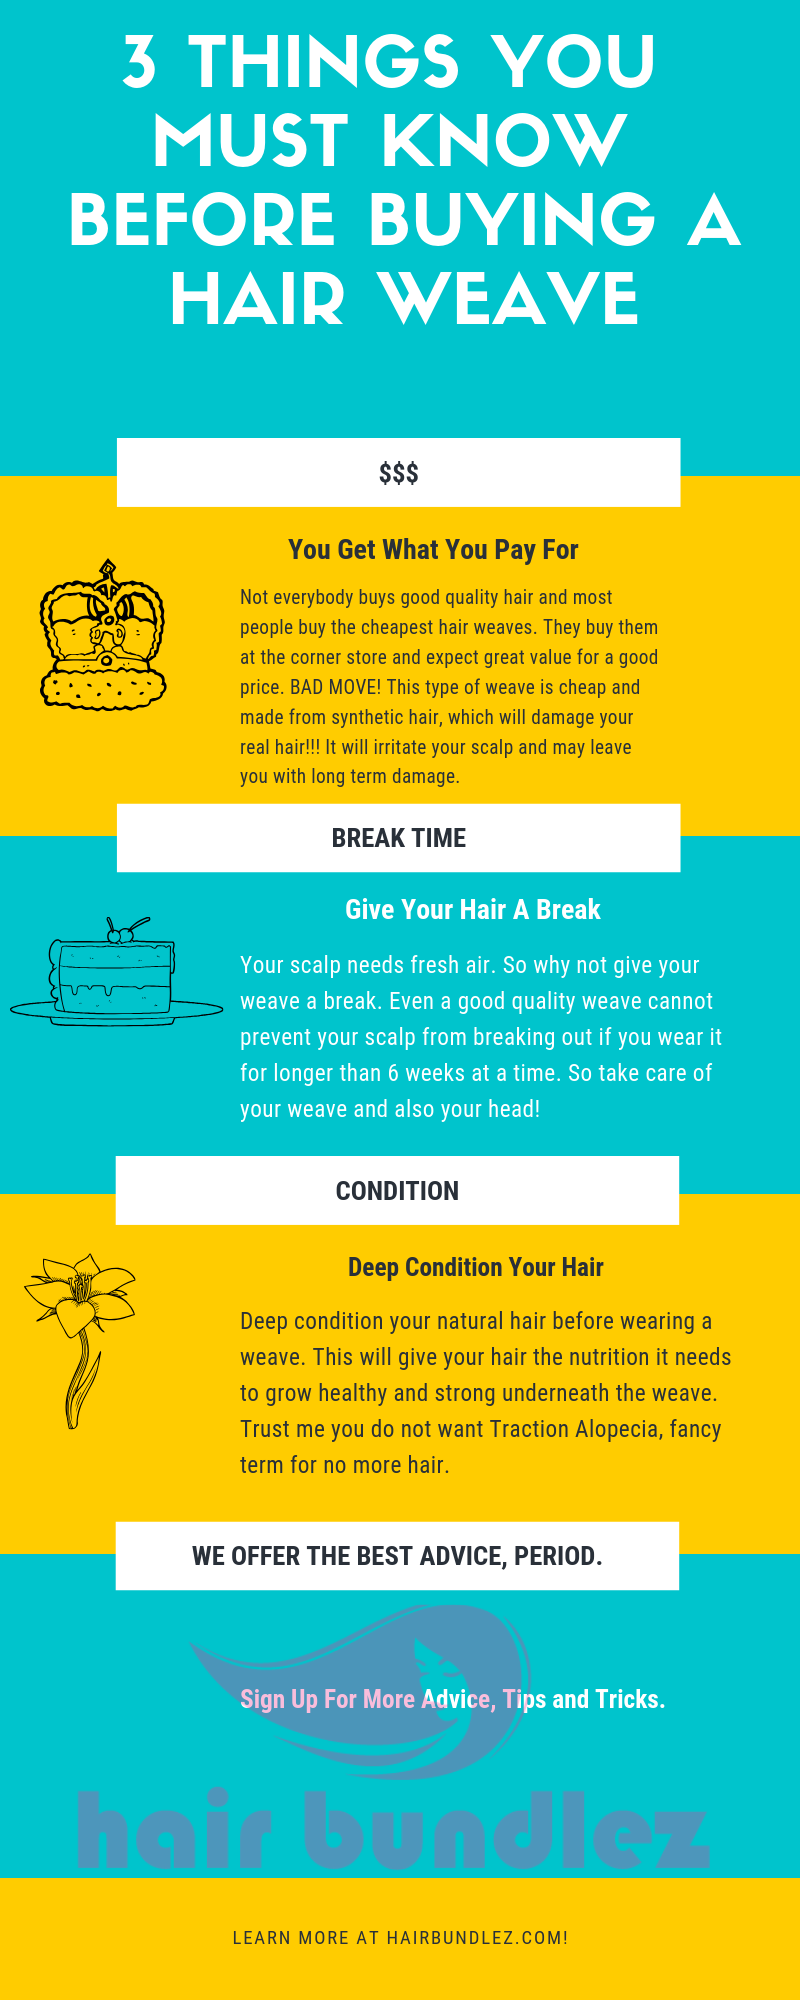 3 Things You Must Know Before Buying a Hair Weave